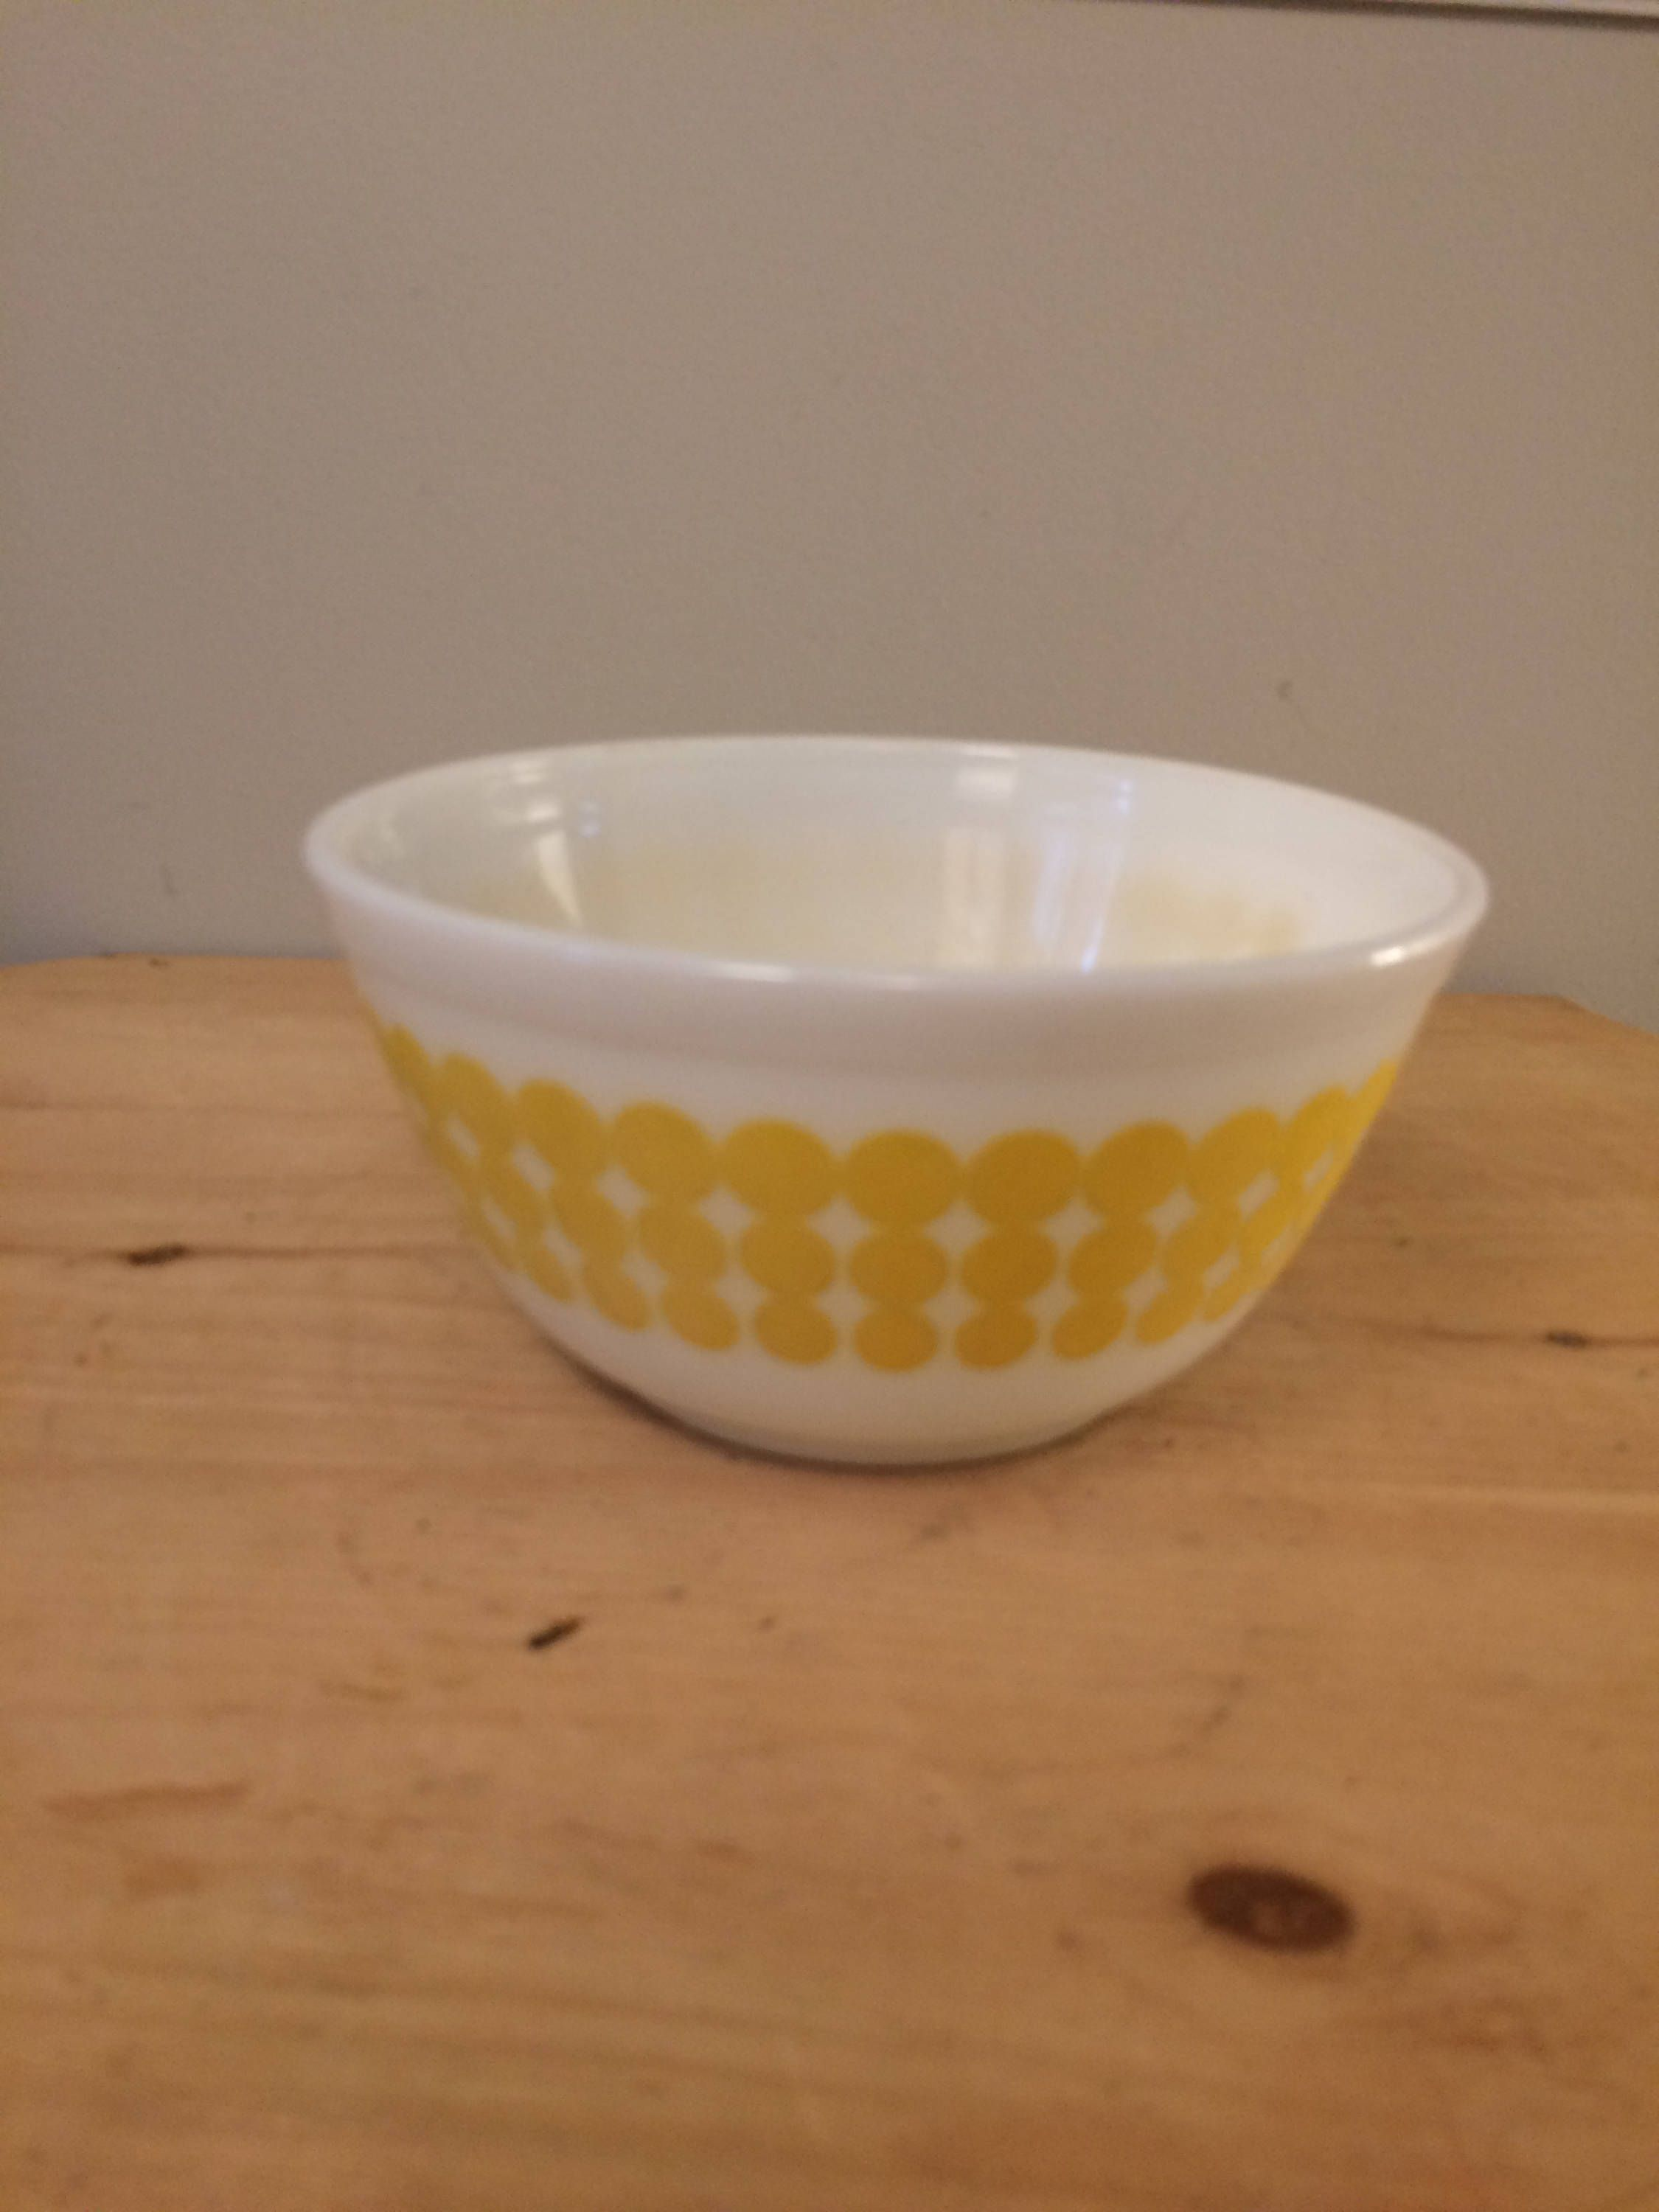 Vintage Pyrex Early American Mixing Bowl #402 1 12 QT Brown on White